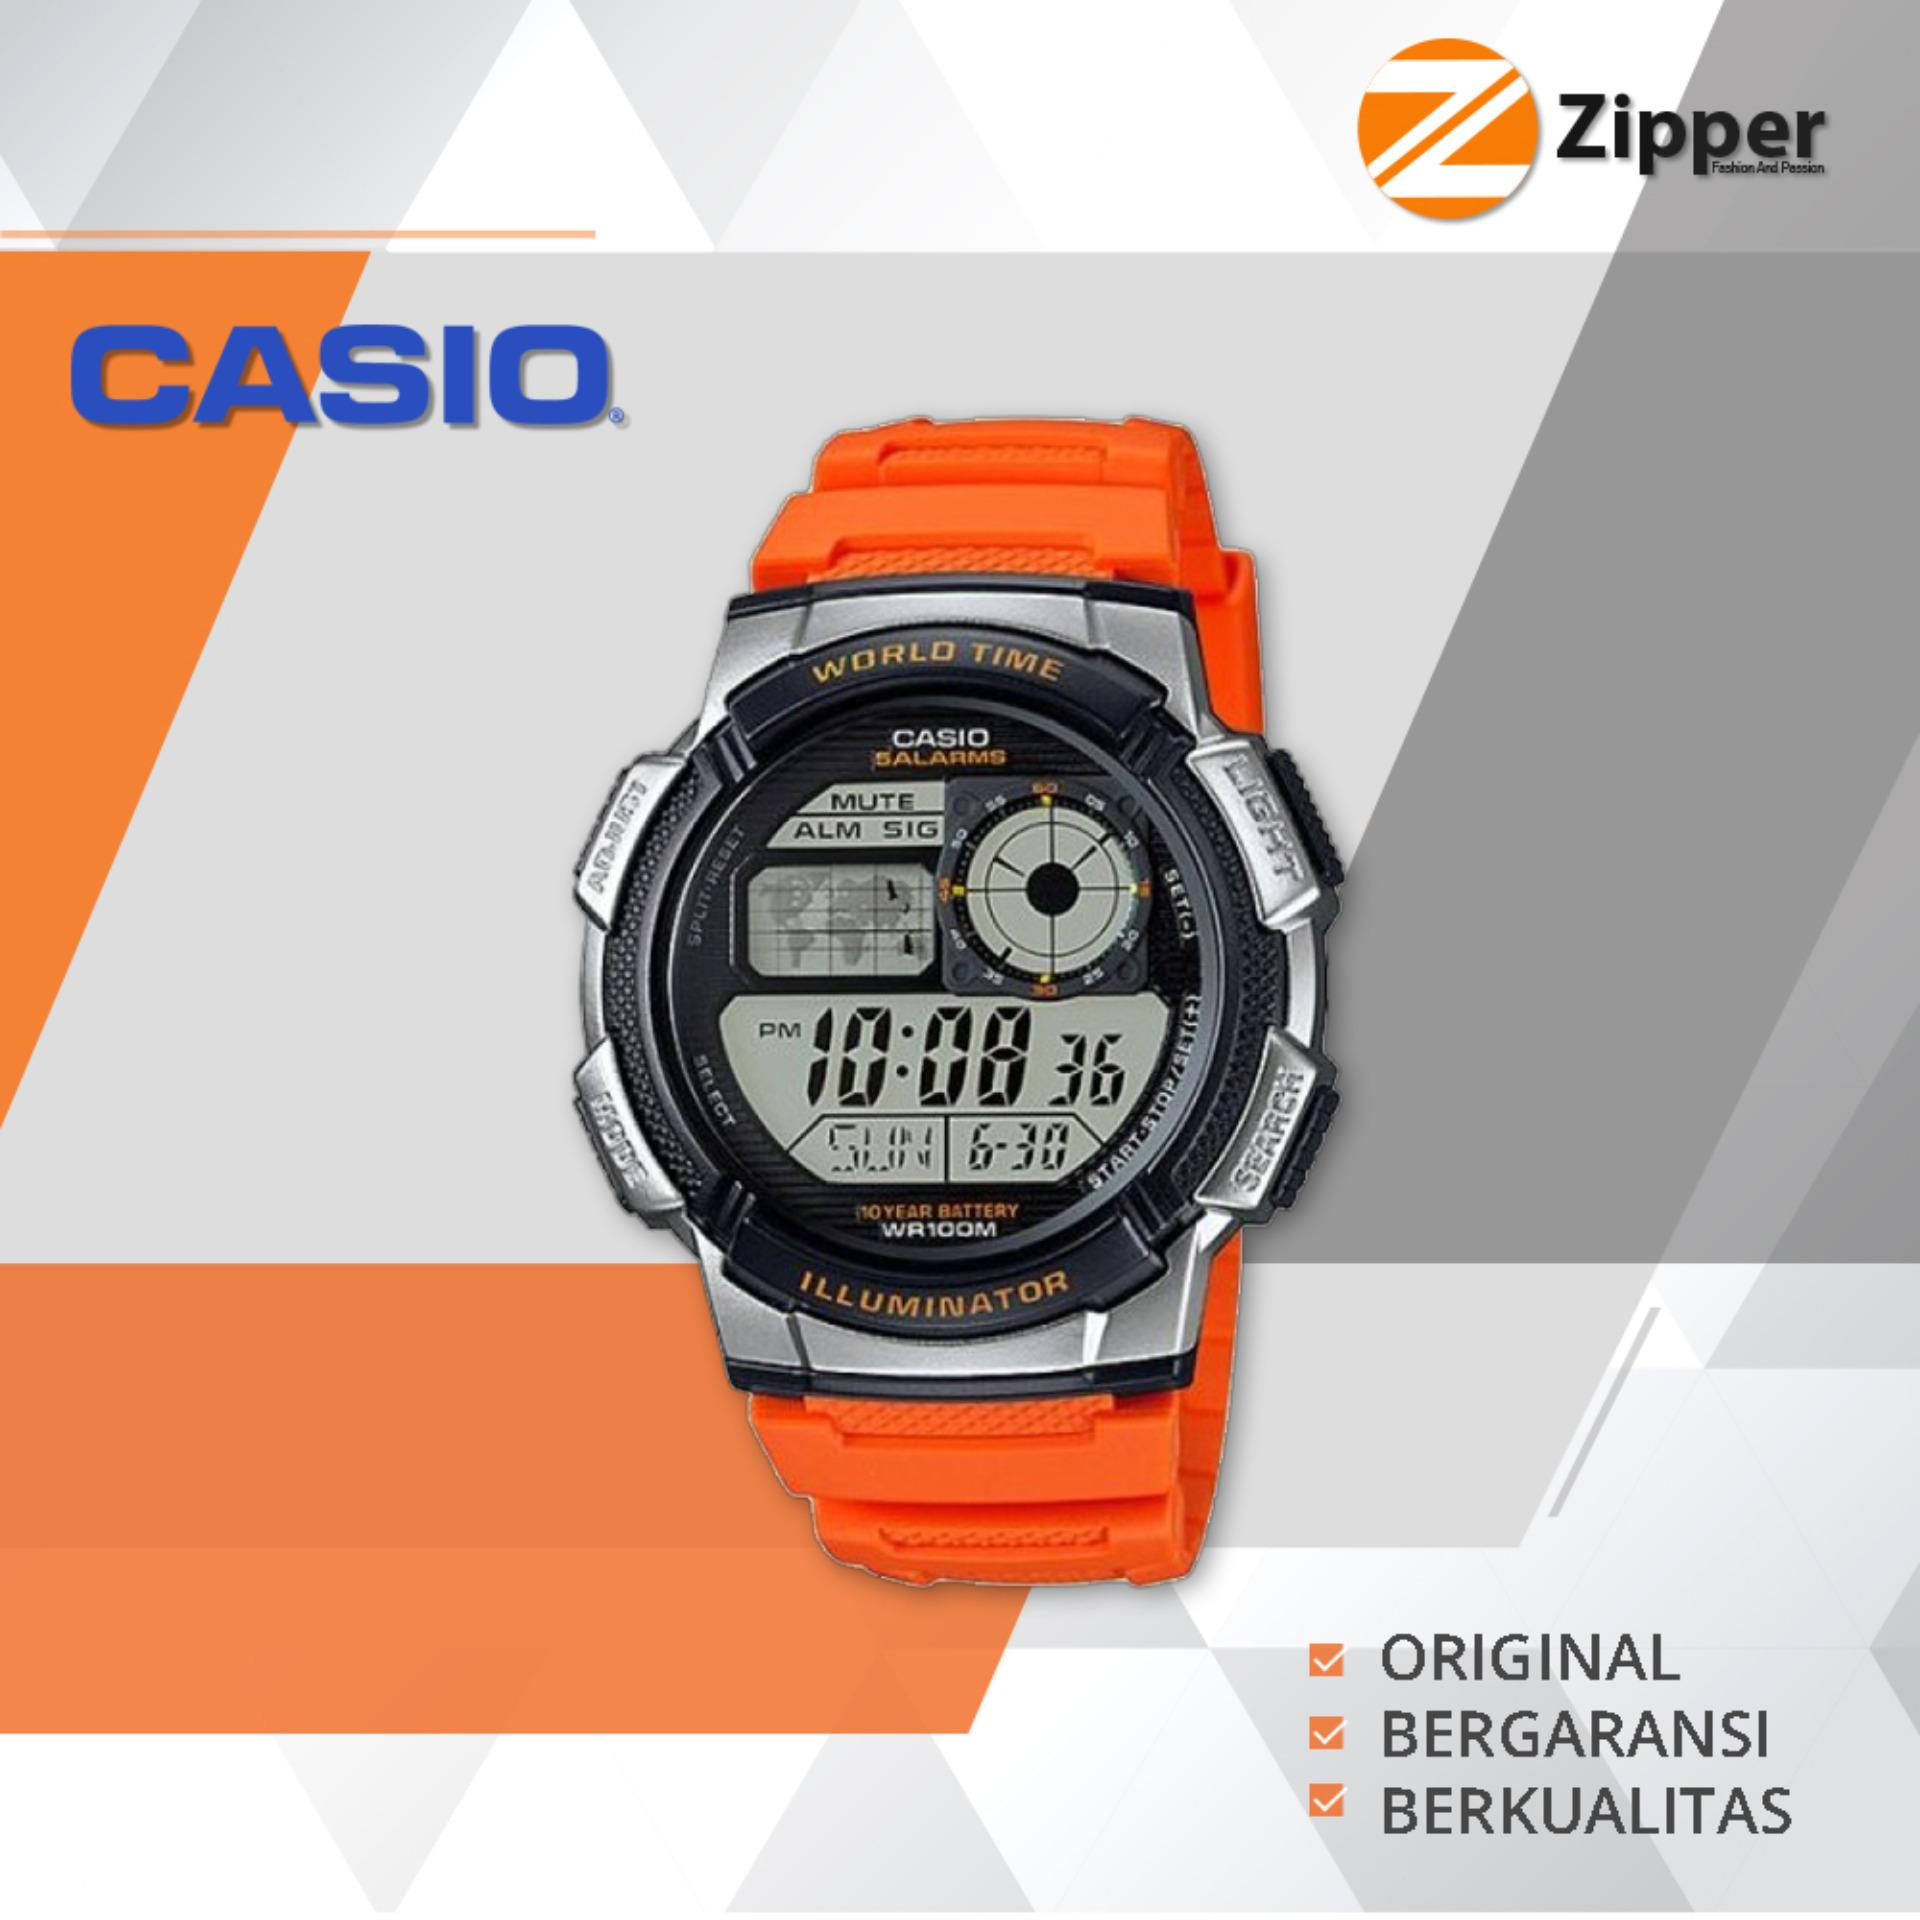 Jual Casio Illuminator Jam Tangan Digital Ae 1000W 4Bvdf Youth Series Tali Karet